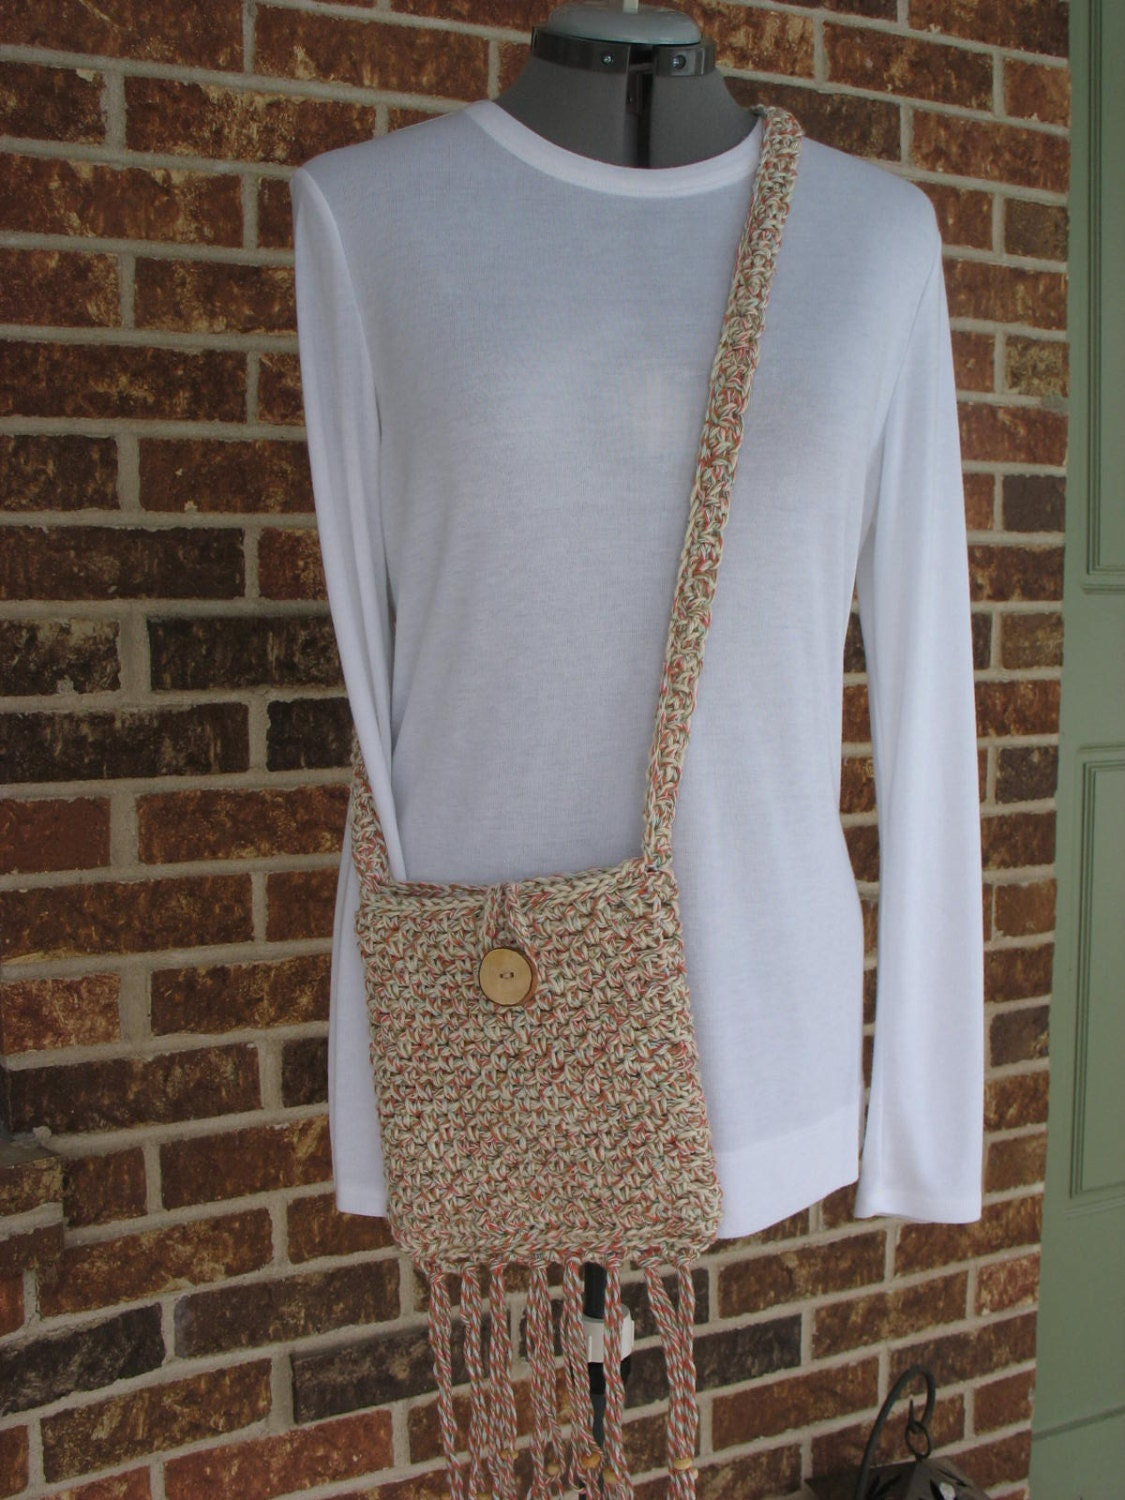 Crochet Cross Body Bag Pattern : Items similar to Crochet Cotton Cross- Body Bag with Fringe- Small ...